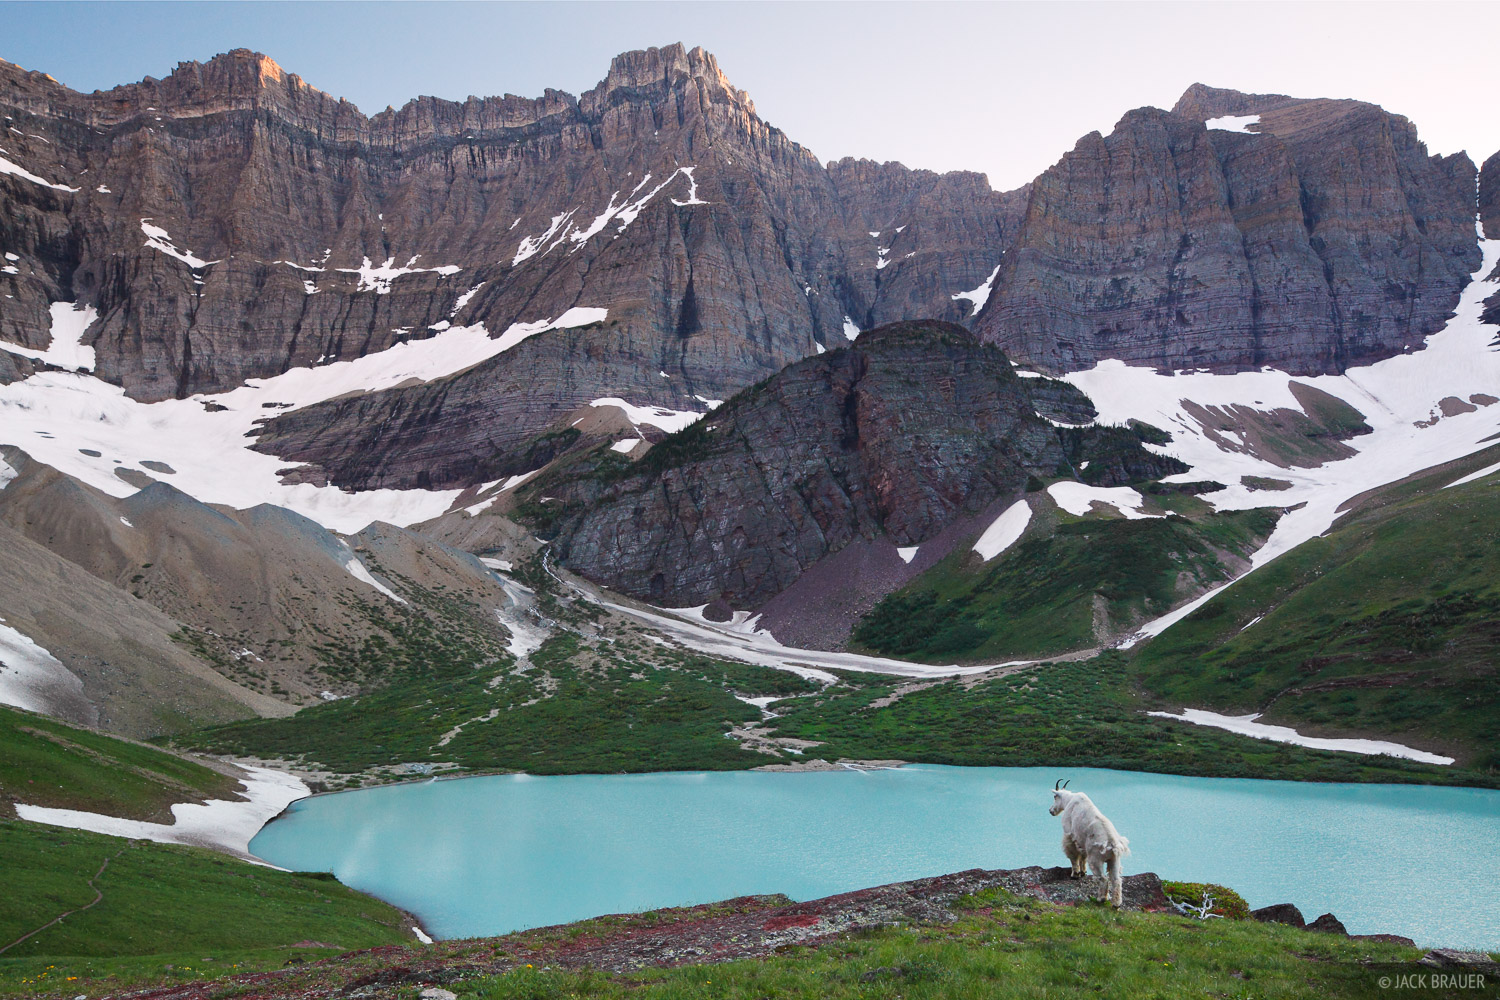 mountain goat, Cracker Lake, Glacier National Park, Montana, photo